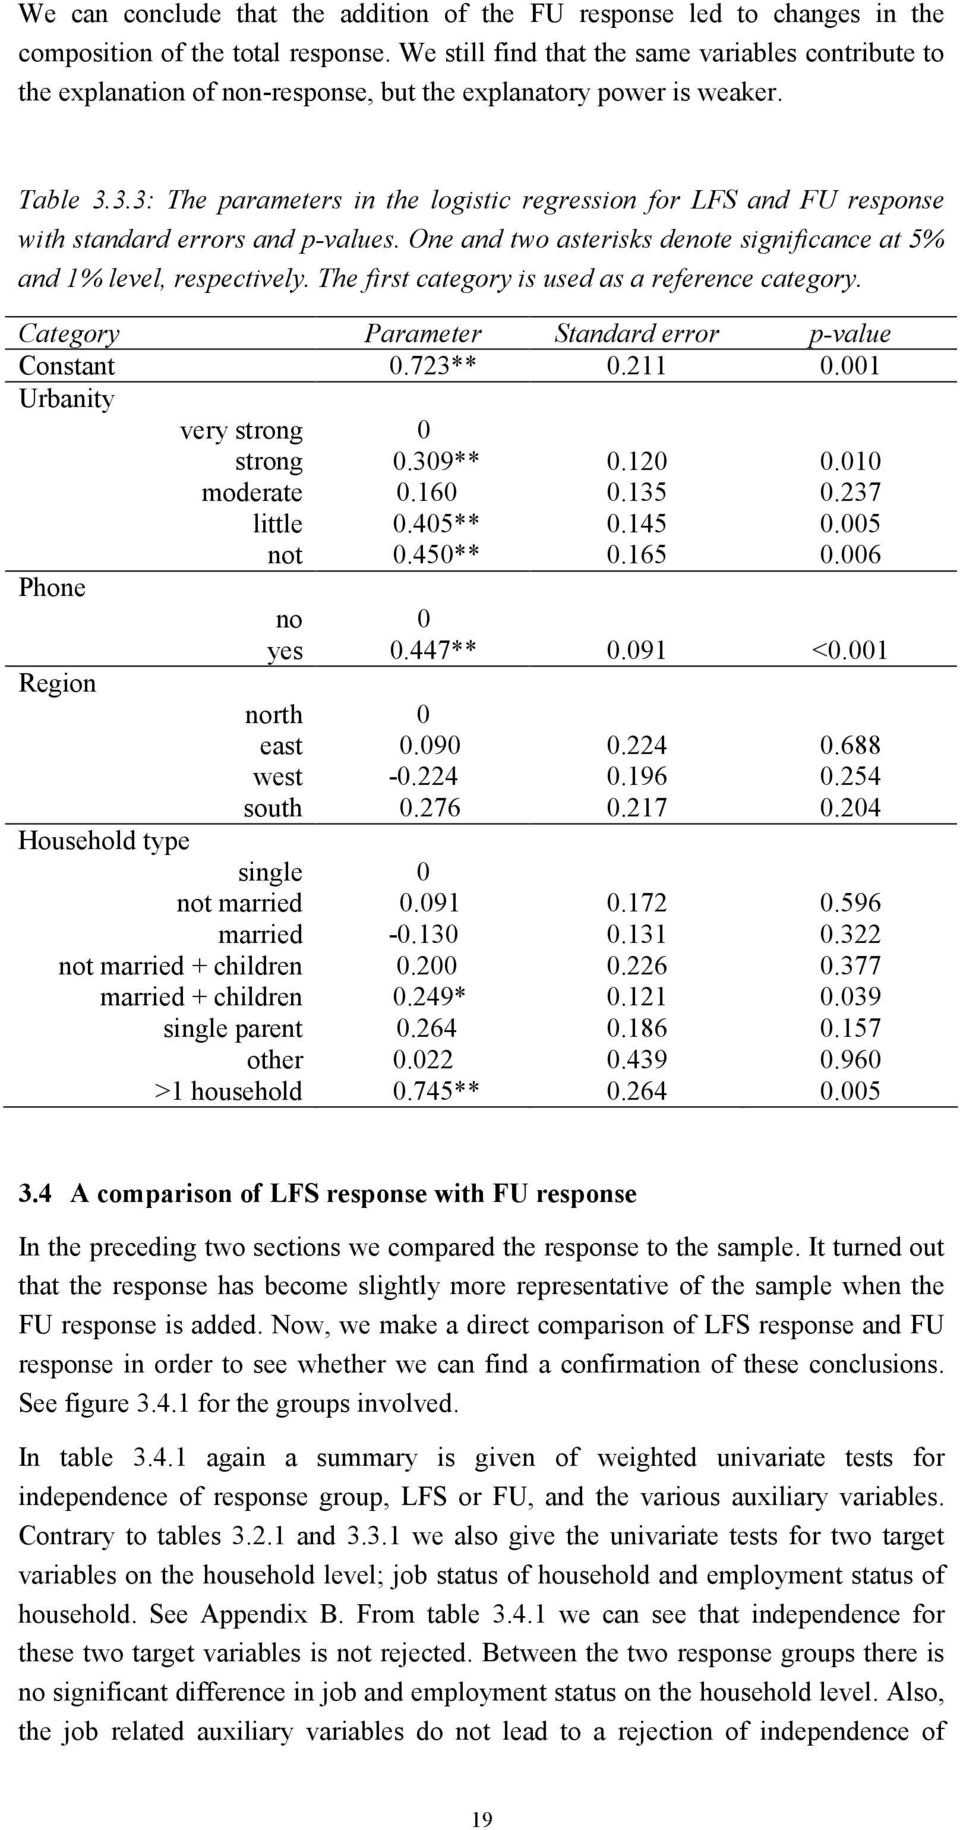 3.3: The parameters in the logistic regression for LFS and FU response with standard errors and p-values. One and two asterisks denote significance at 5% and 1% level, respectively.